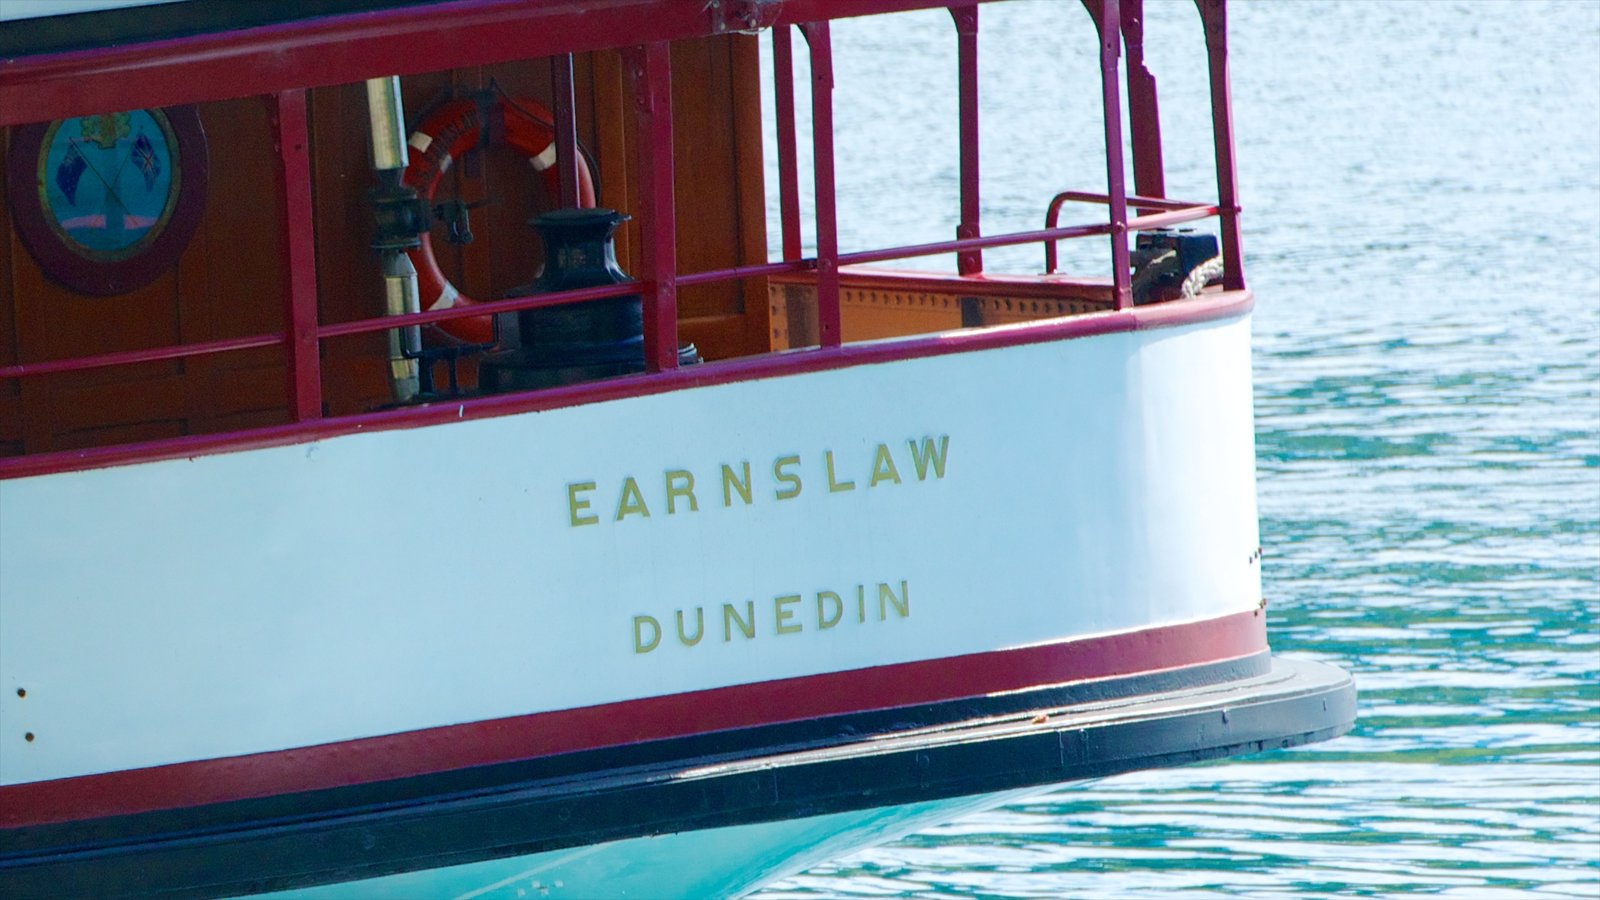 TSS Earnslaw Steamship which includes signage and a ferry